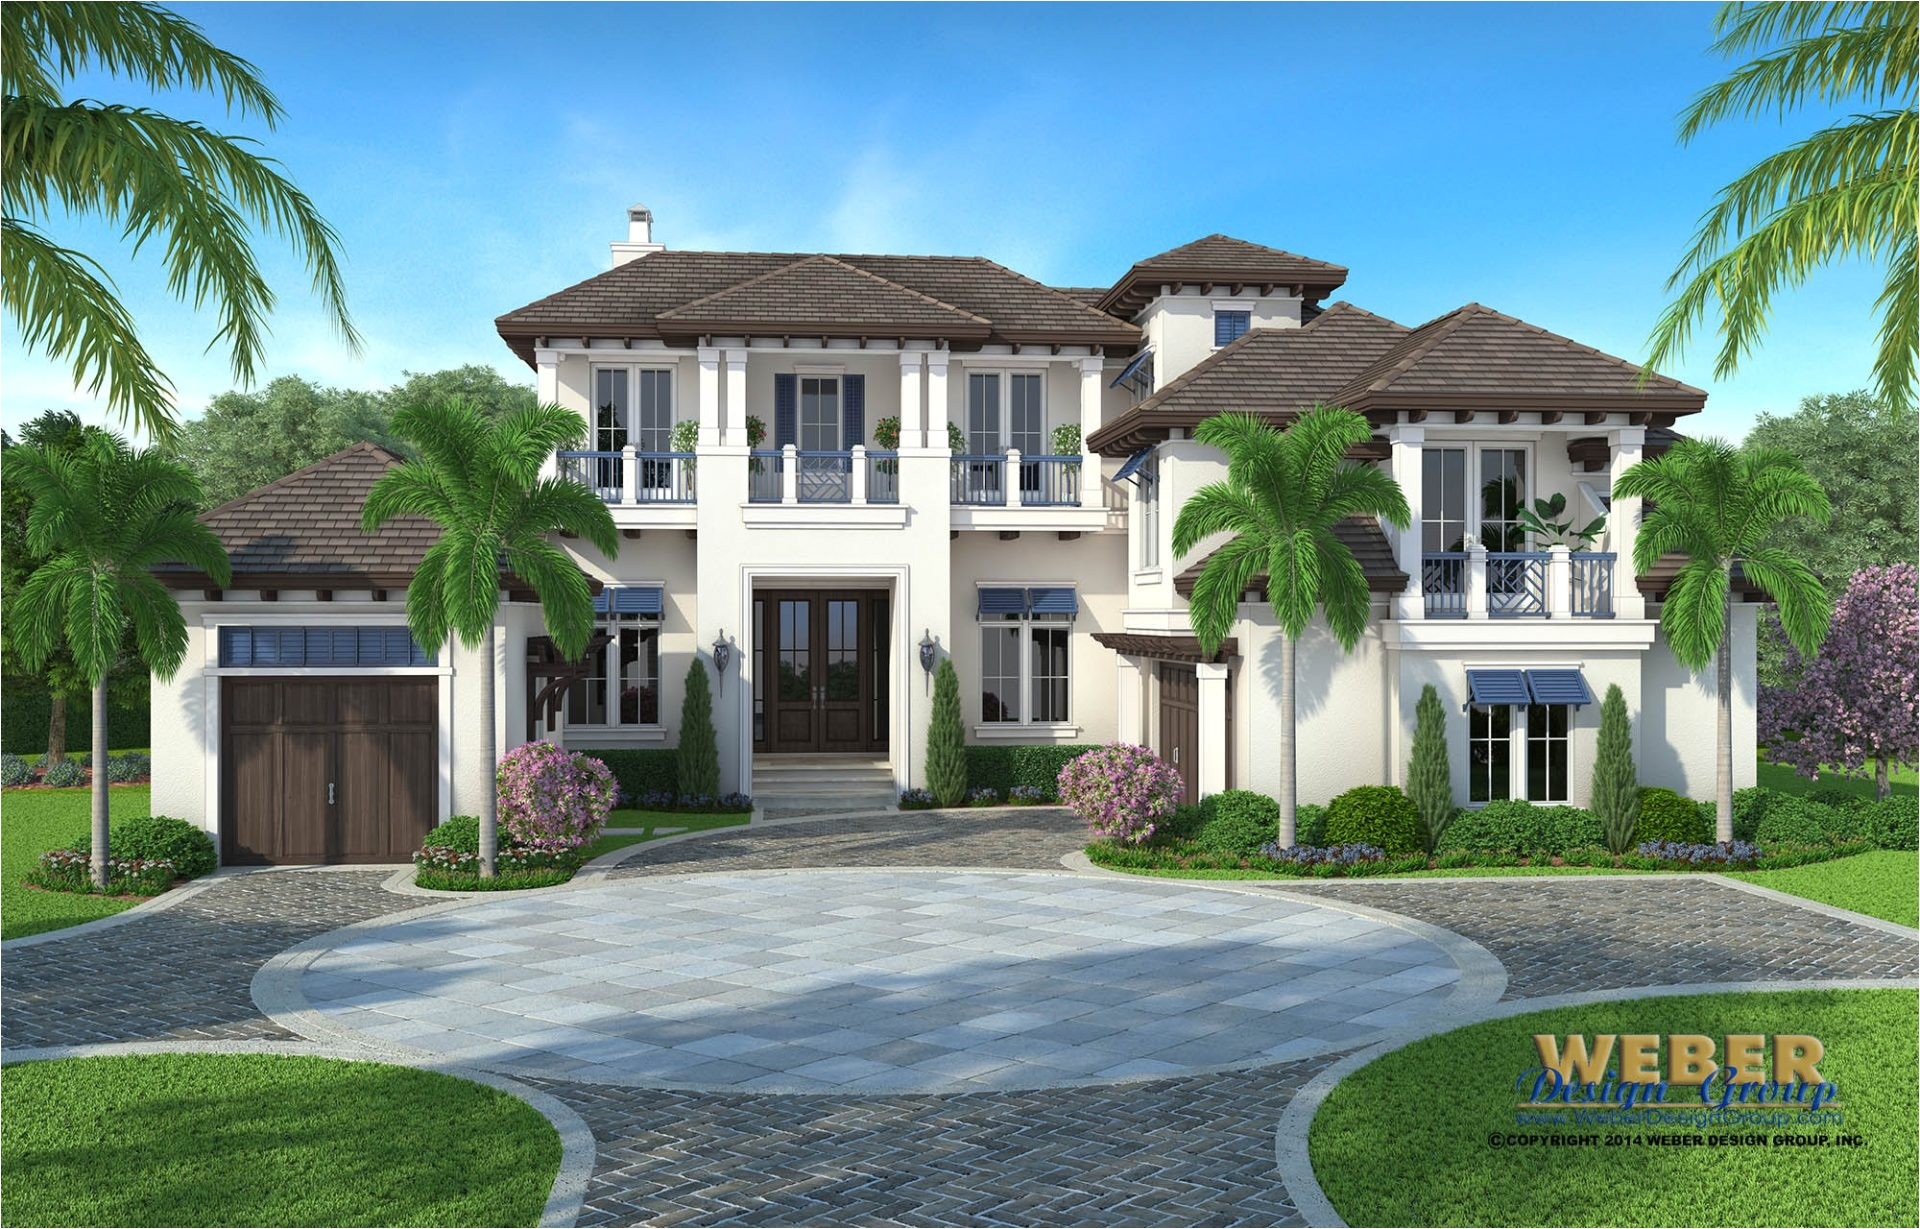 small florida house plans